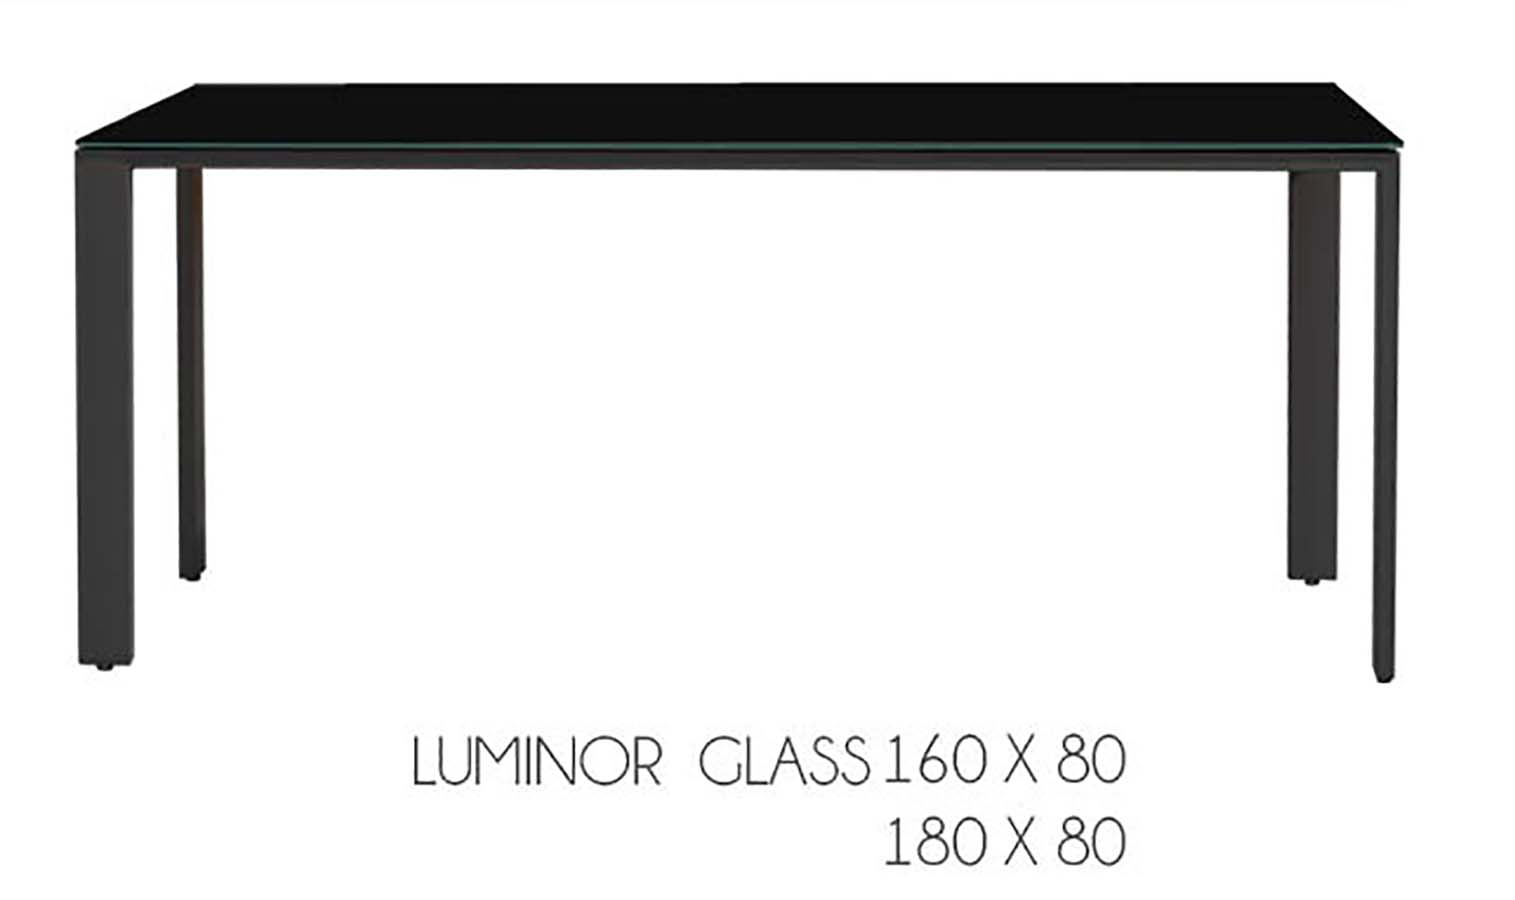 LUMINOR GLASS